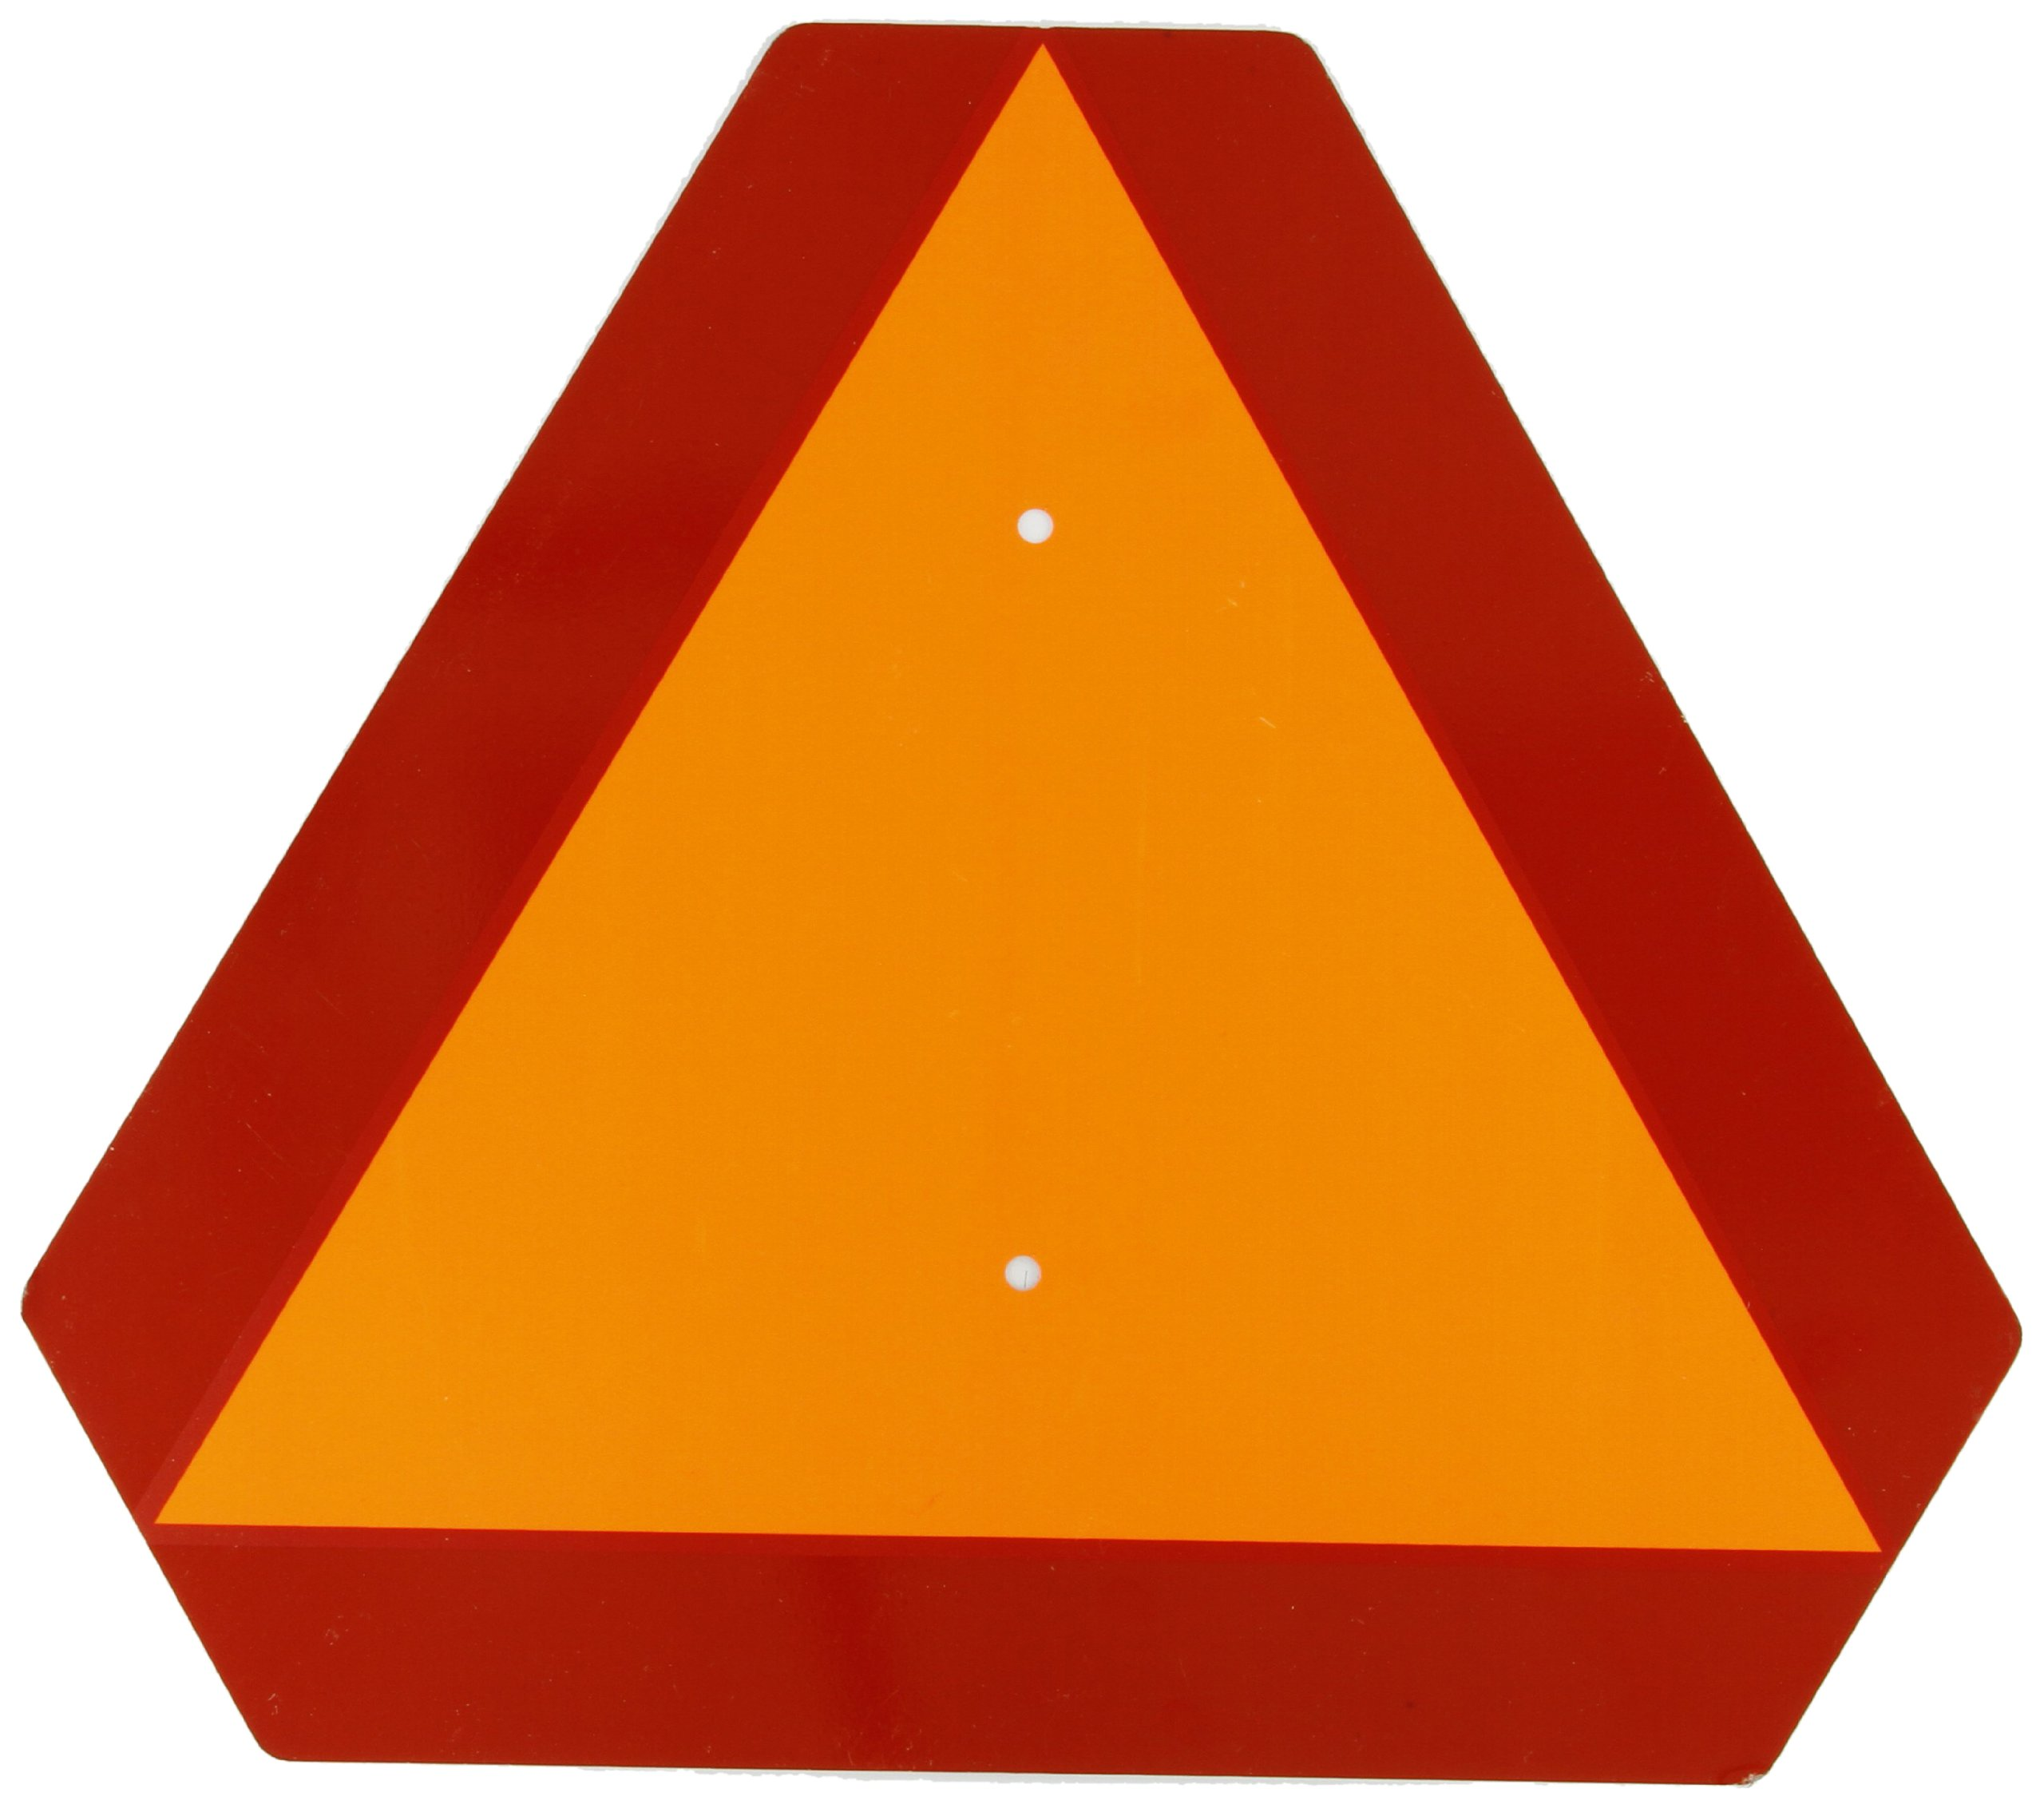 Brady Slow Moving Vehicle Sign, 14'' Height x 14'' Width, Steel, Reflective Orange and Red -  57894 by Brady